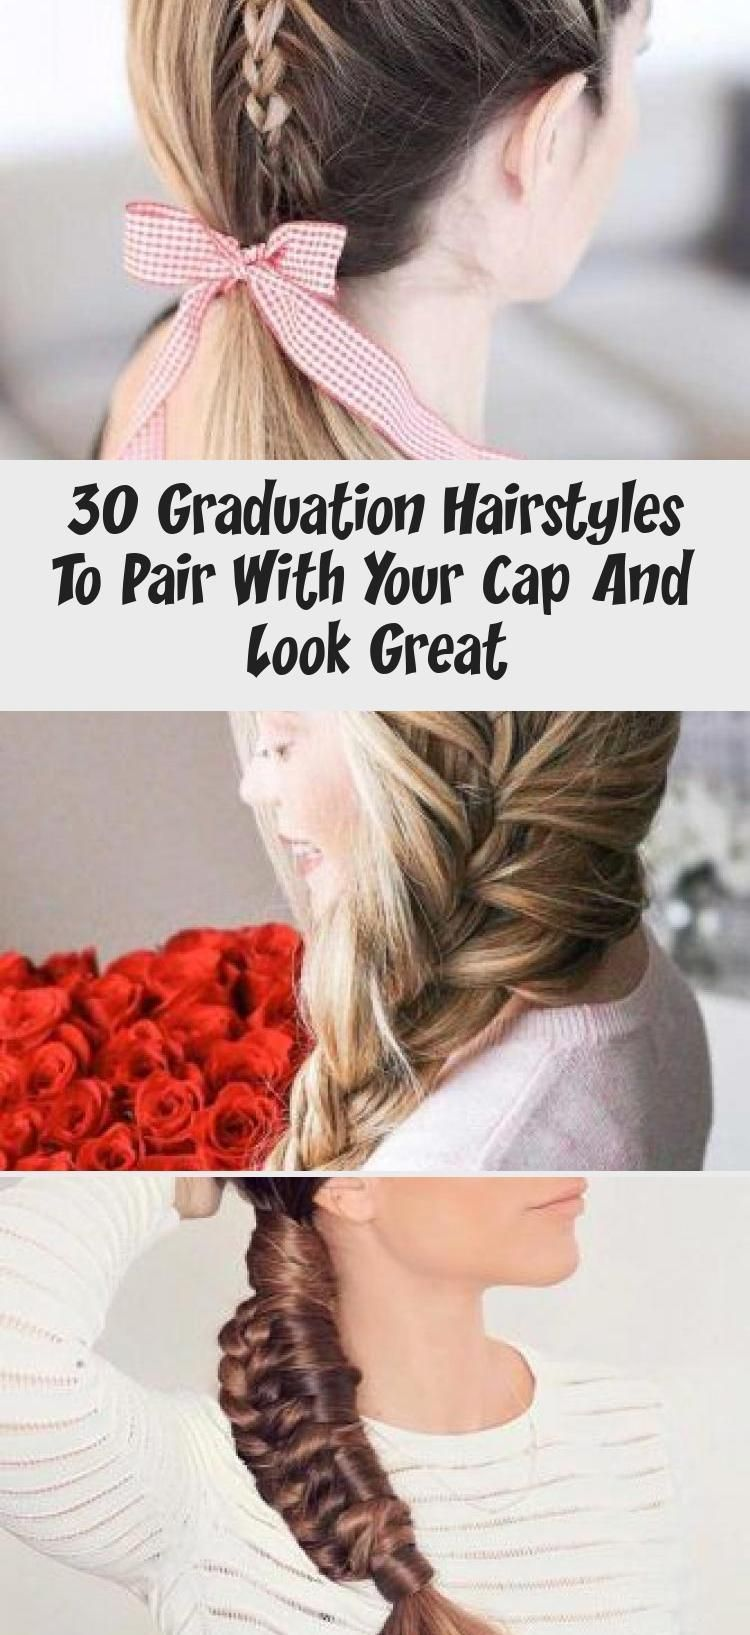 30 Graduation Hairstyles To Pair With Your Cap And Look Great Graduation Hairstyles To Pair With Your Cap And Look Great